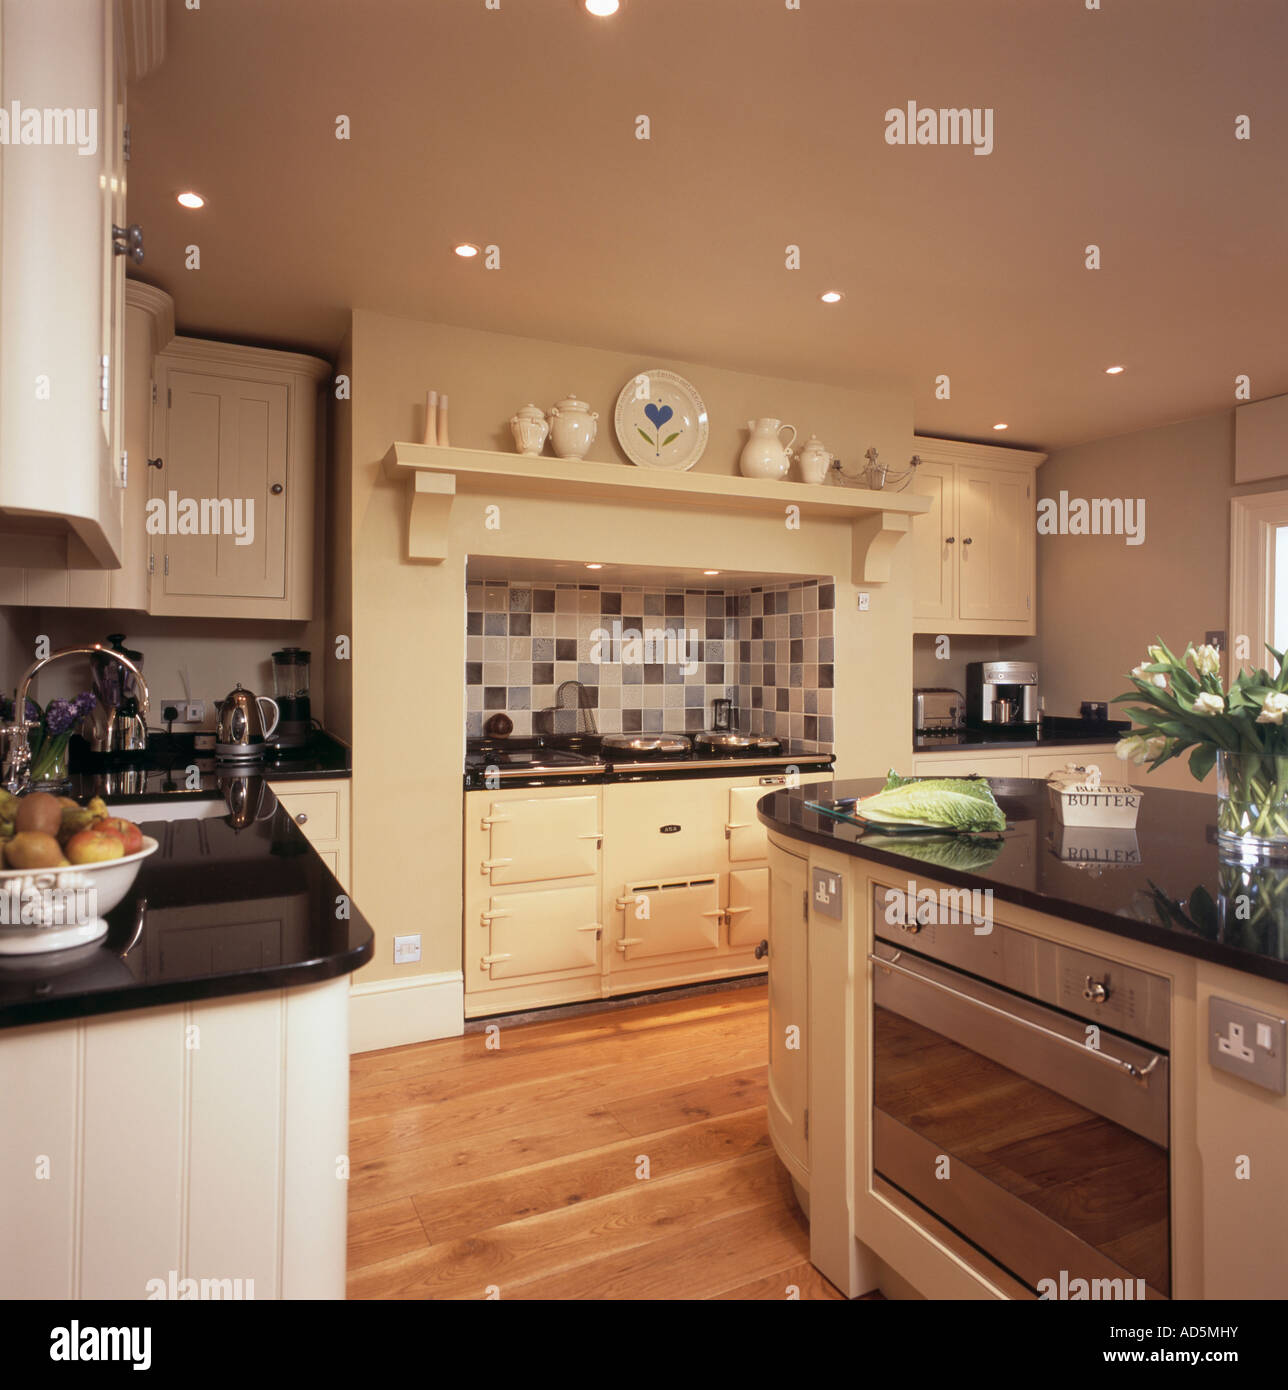 Kitchen With Living Room Design: Cream Aga Oven In Country Kitchen With Built In Oven In